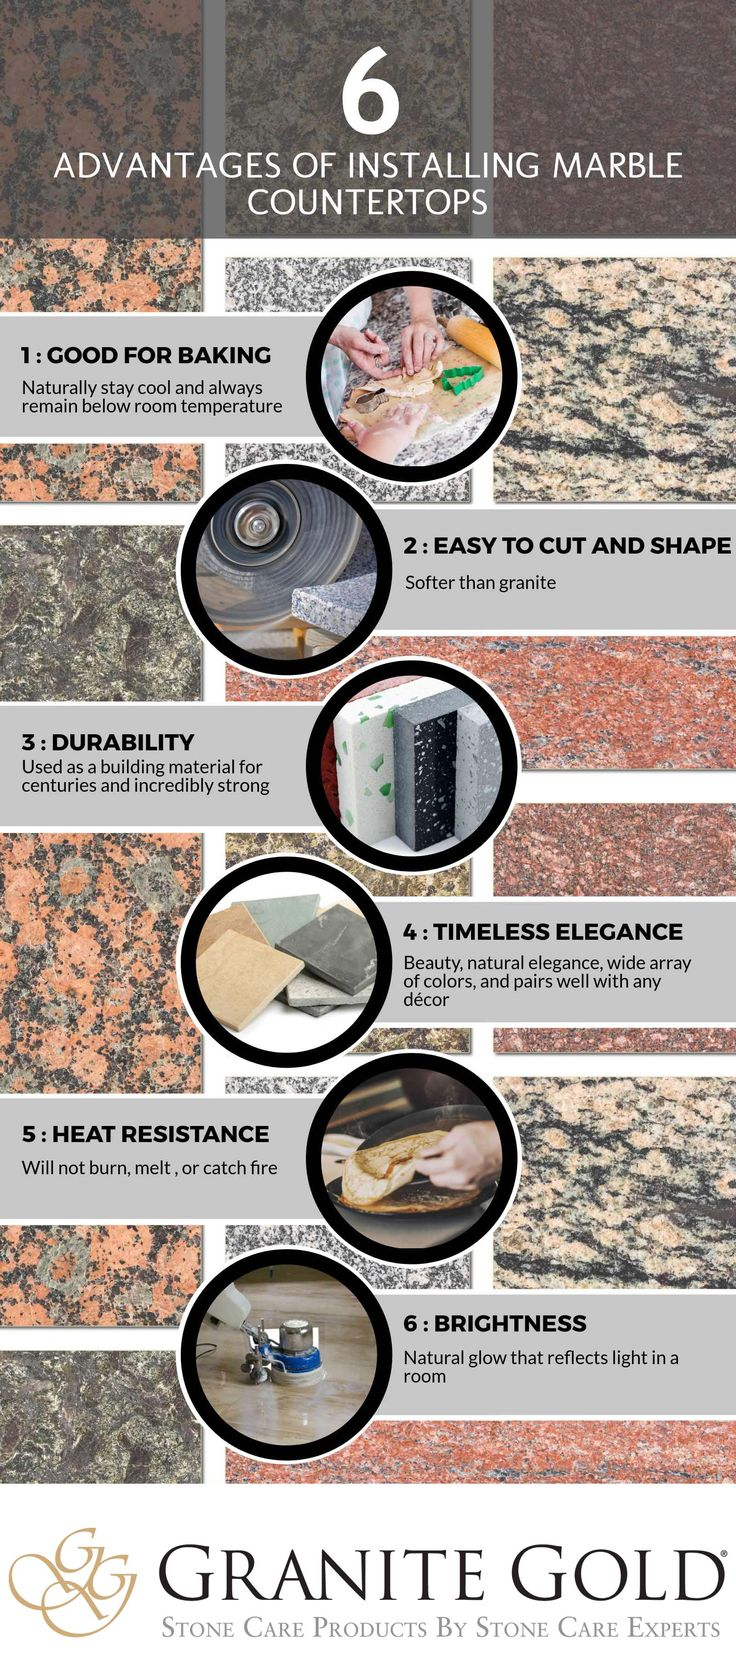 Marble is a gorgeous natural stone that many homeowners will agree is a wonderful option for kitchen and bathroom countertops. From durability to heat resistance, there are many reasons to choose marble for your home. Whatever your motivation is for choosing marble, make sure you care for the stone properly by regularly using a stone-safe cleaner, sealer, and granite polish.